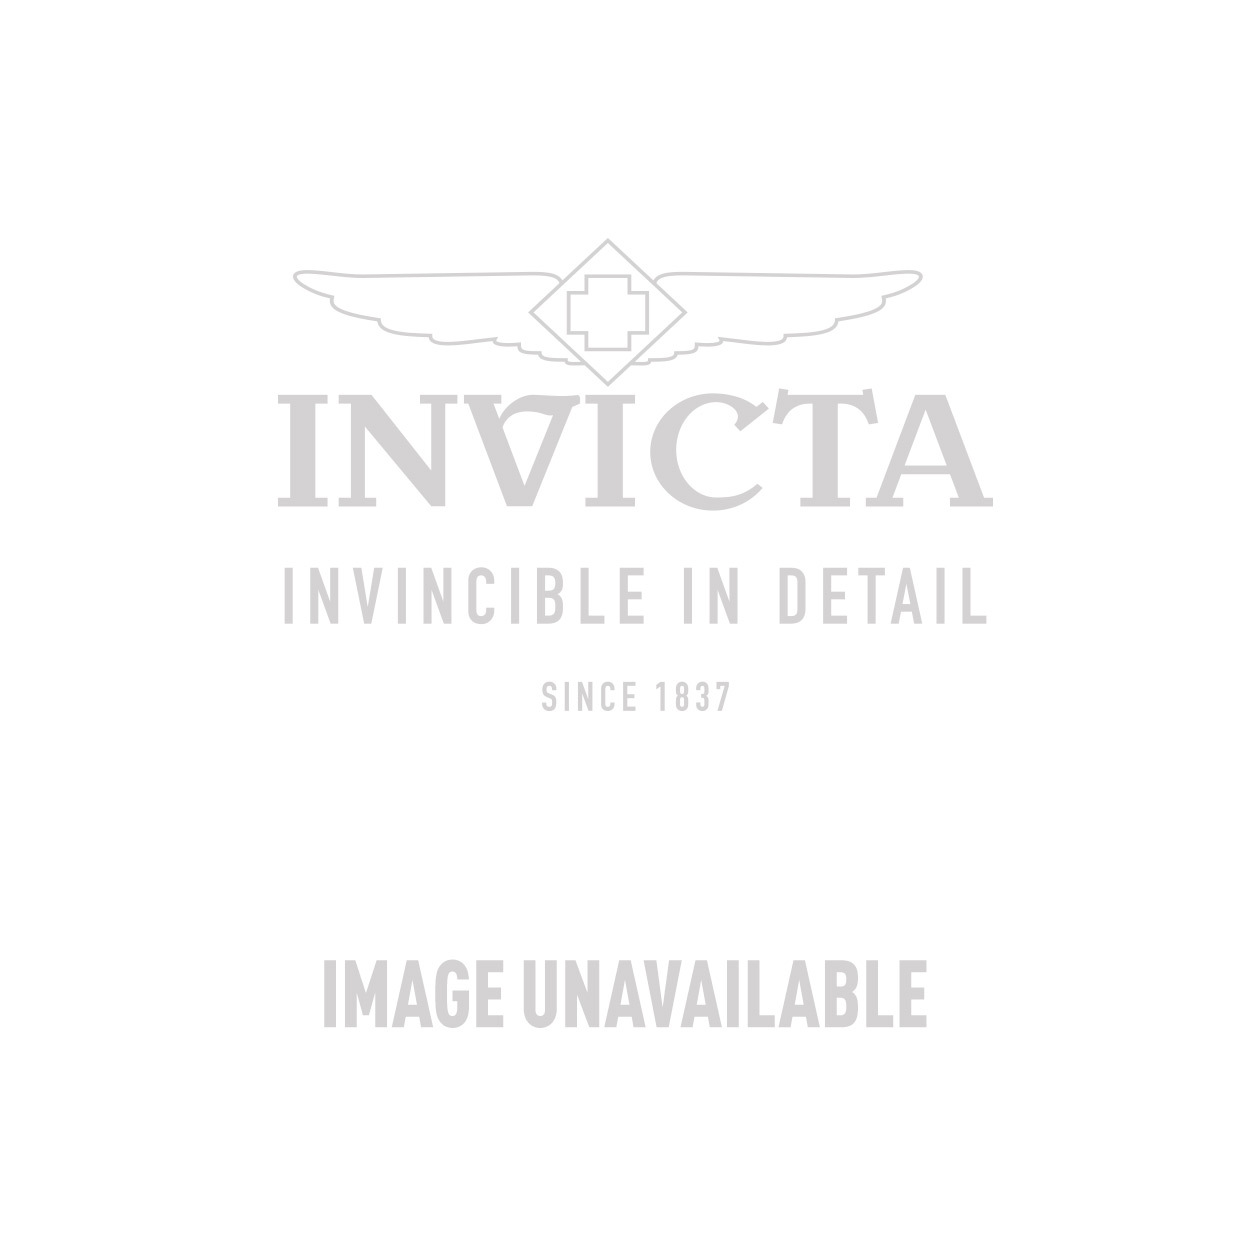 Invicta S. Coifman Swiss Made Quartz Watch - Stainless Steel case with Black tone Leather band - Model SC0251